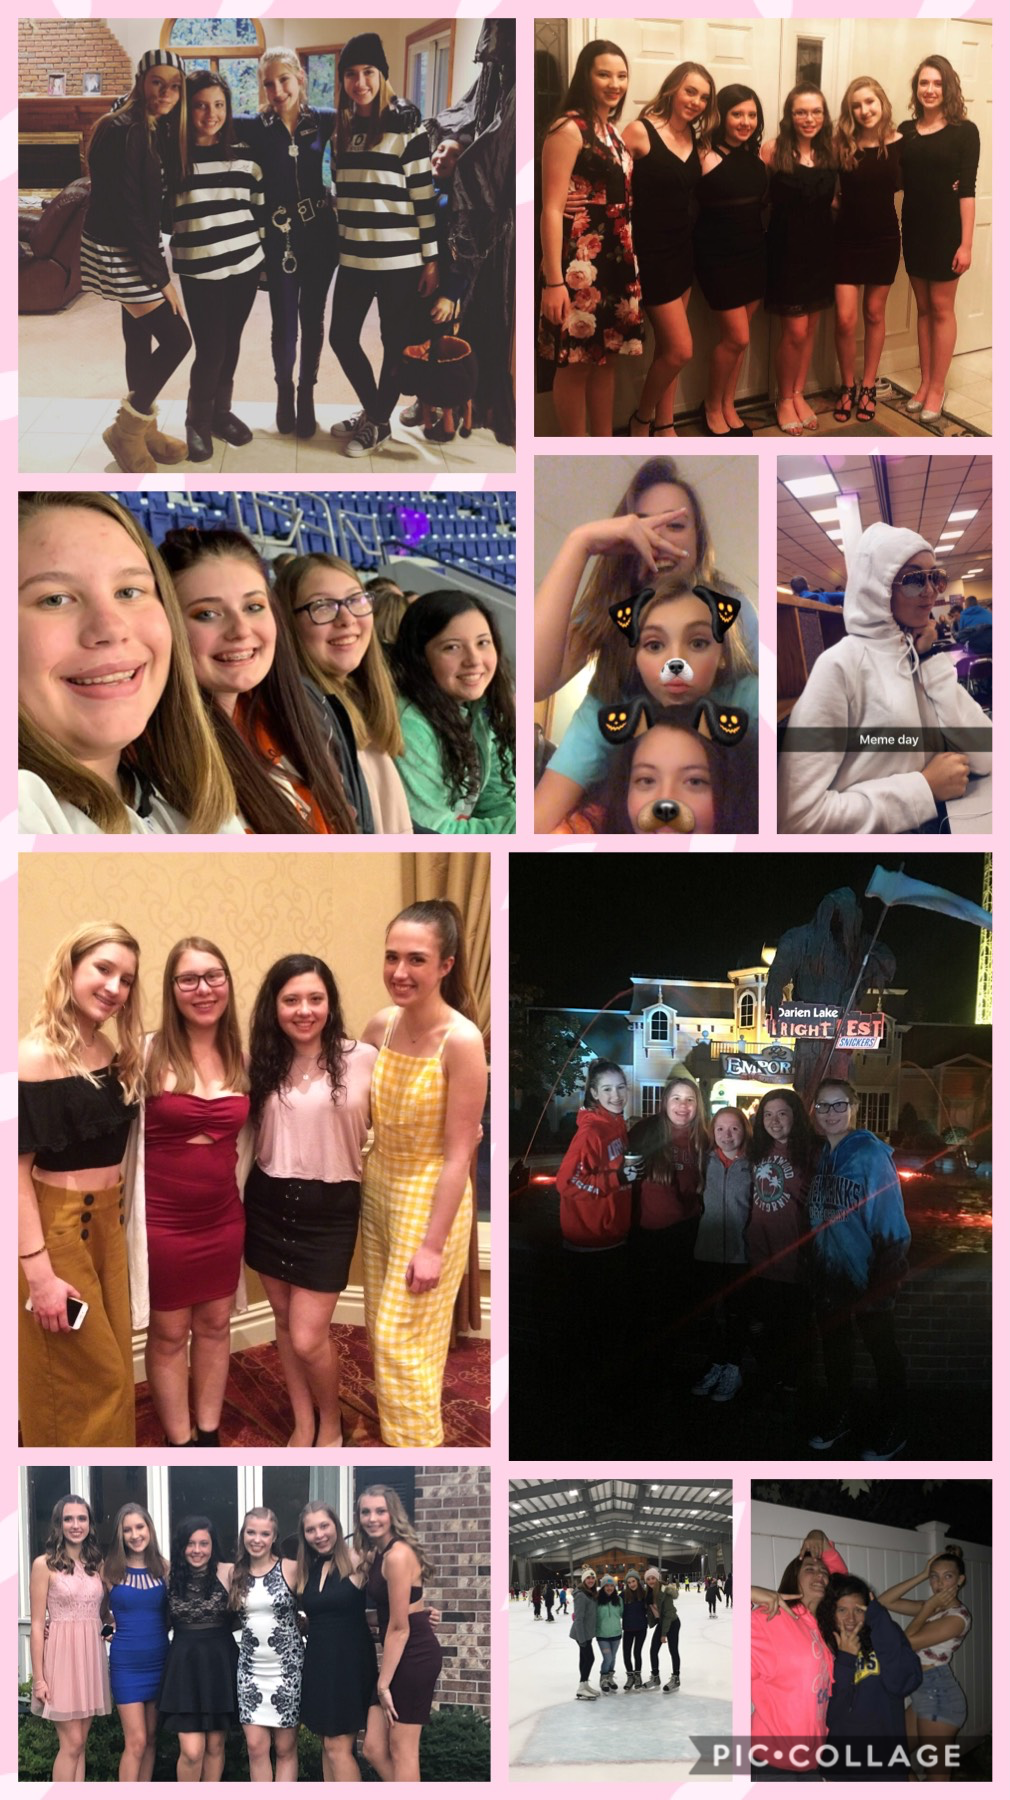 It's so hard to believe that freshman year is already coming to an end. It seems like it was just yesterday we were promising each other not to leave💕I love you all❤️ Olivia, Kennedy, Andrea, Miranda and Madeline